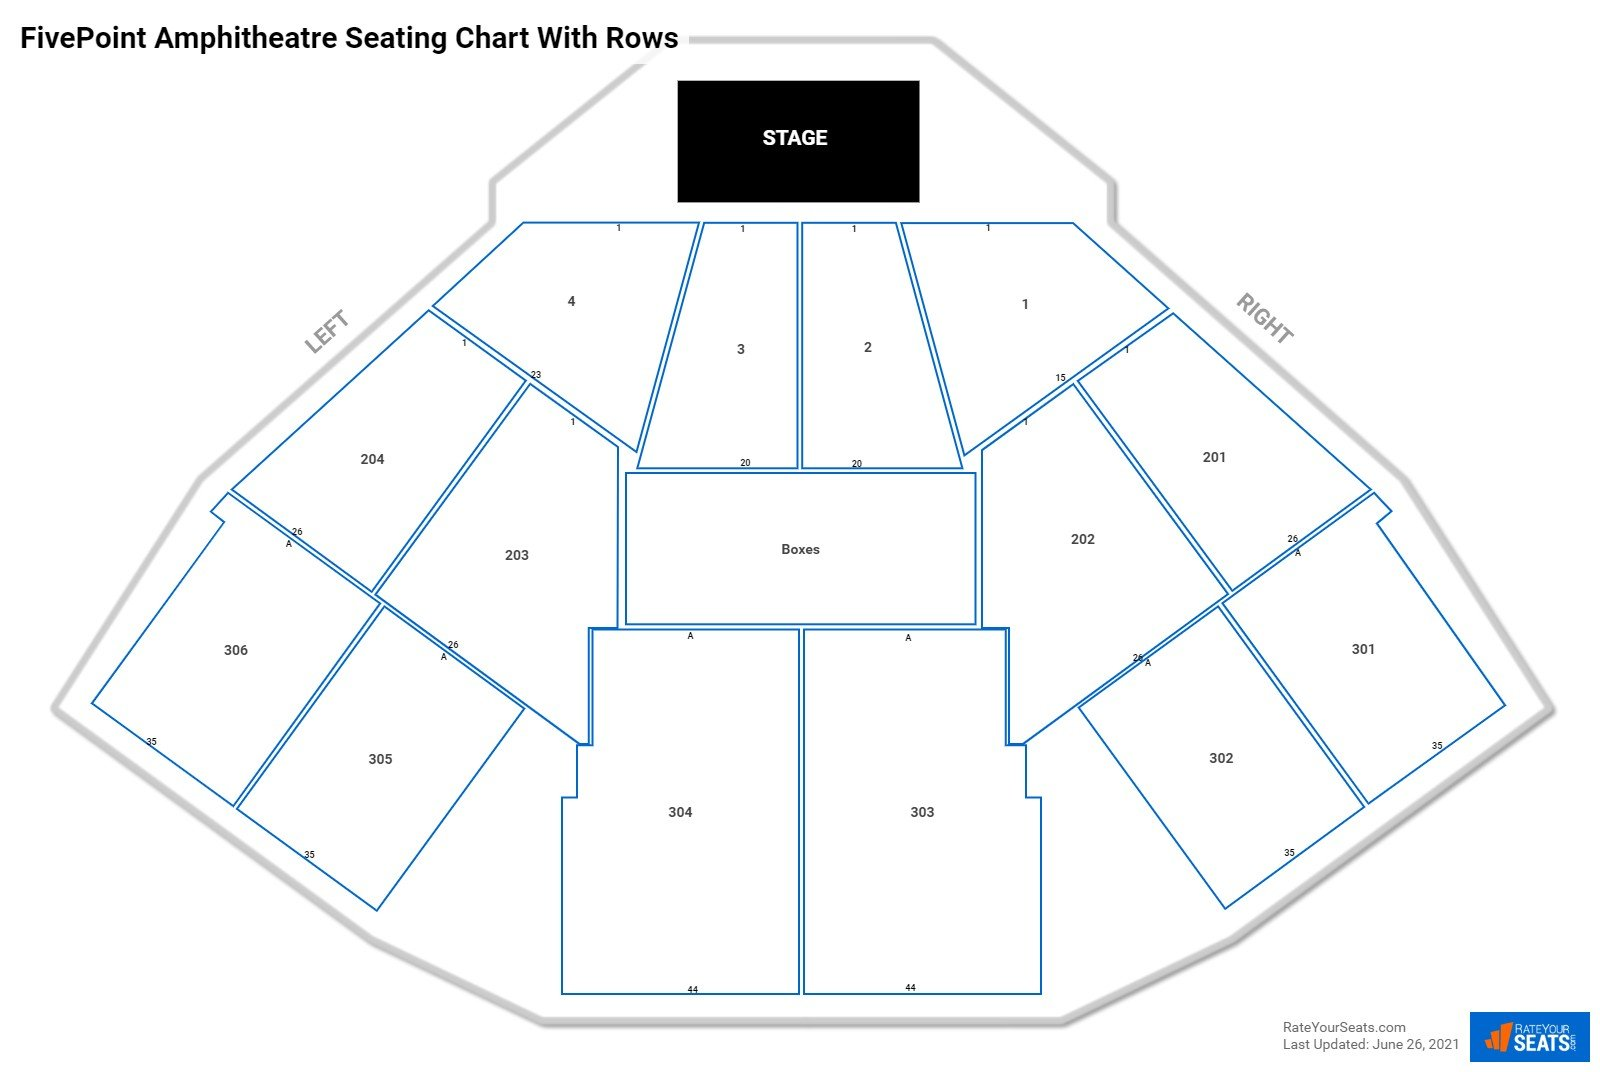 FivePoint Amphitheatre seating chart with rows